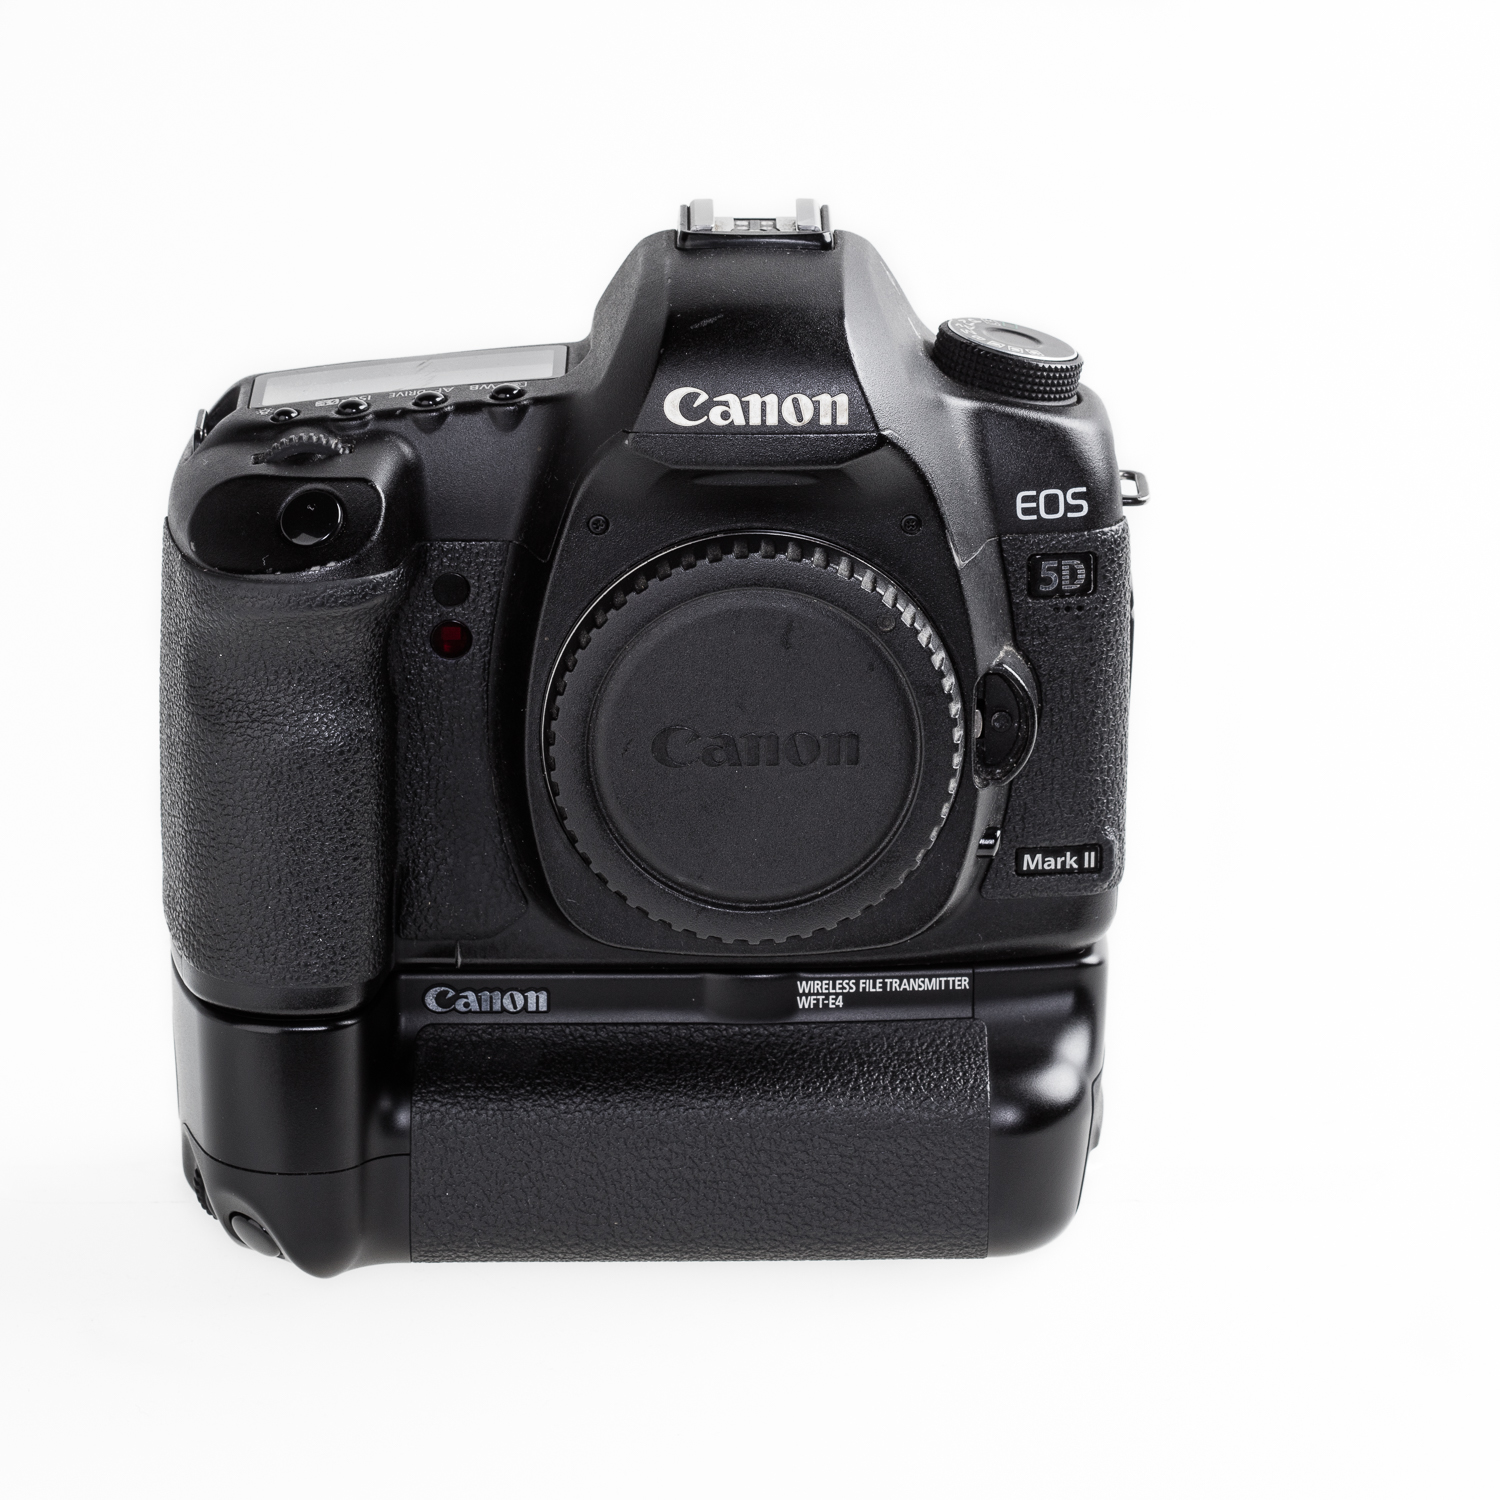 Canon 5DII met 21.1 MP full frame sensor met ruim 200.000 'actuations', hier afgebeeld met de wireless file transmitter.